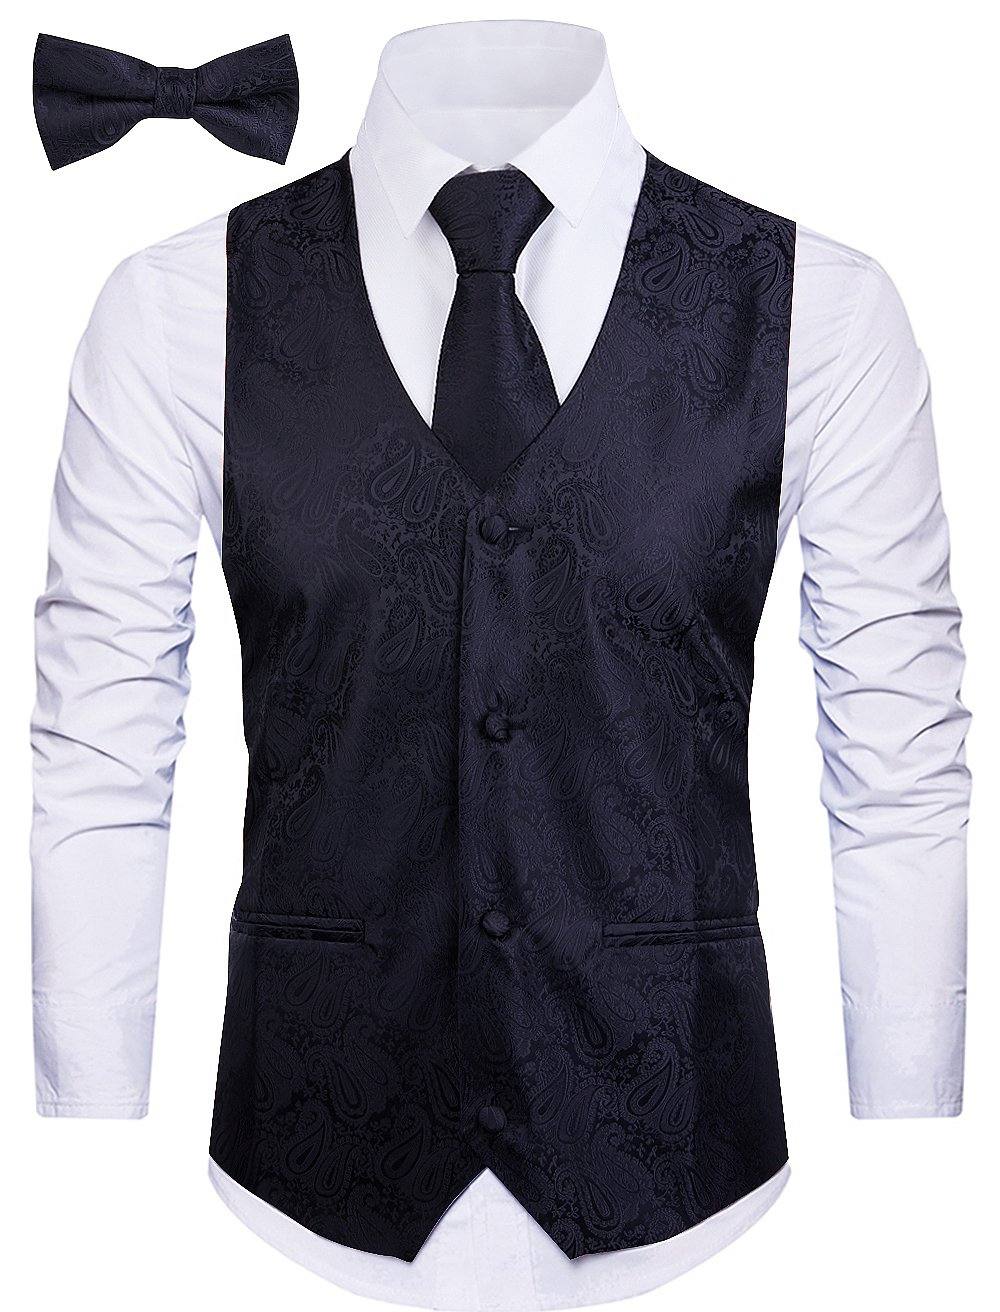 Cyparissus 3pc Paisley Vest for Men with Neck Tie and Bow Tie Set for Suit or Tuxedo (XL, Black)